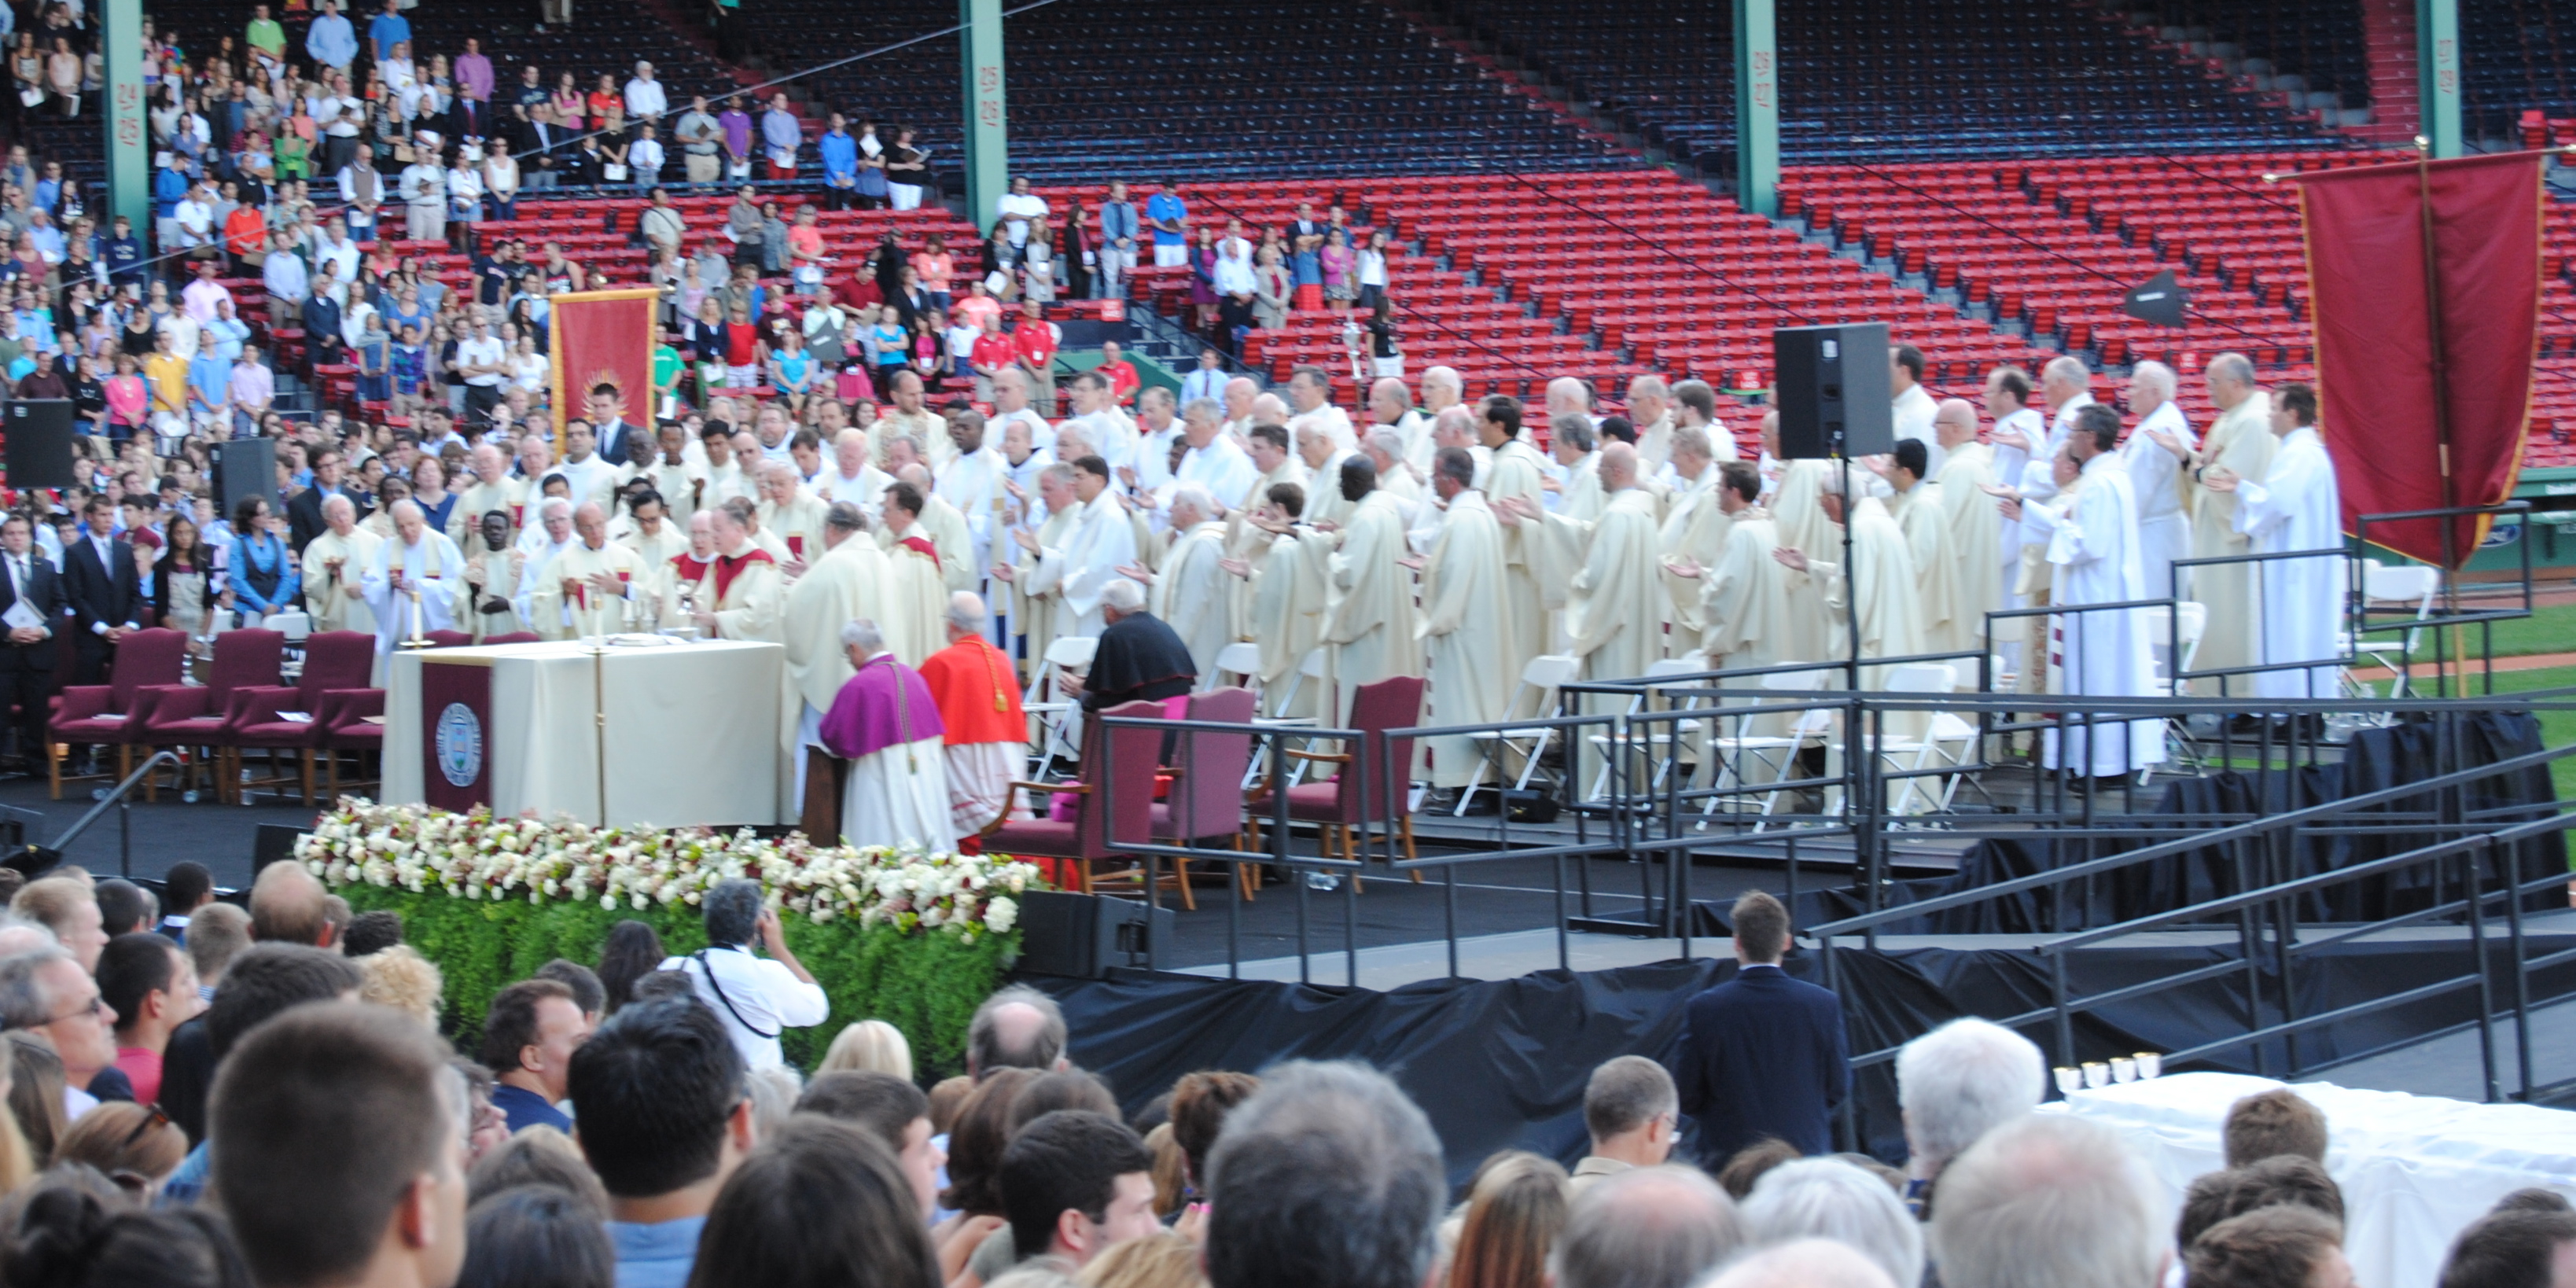 The Jesuits of Boston College came together yesterday to celebrate the 150th anniversary of the elite Catholic university.